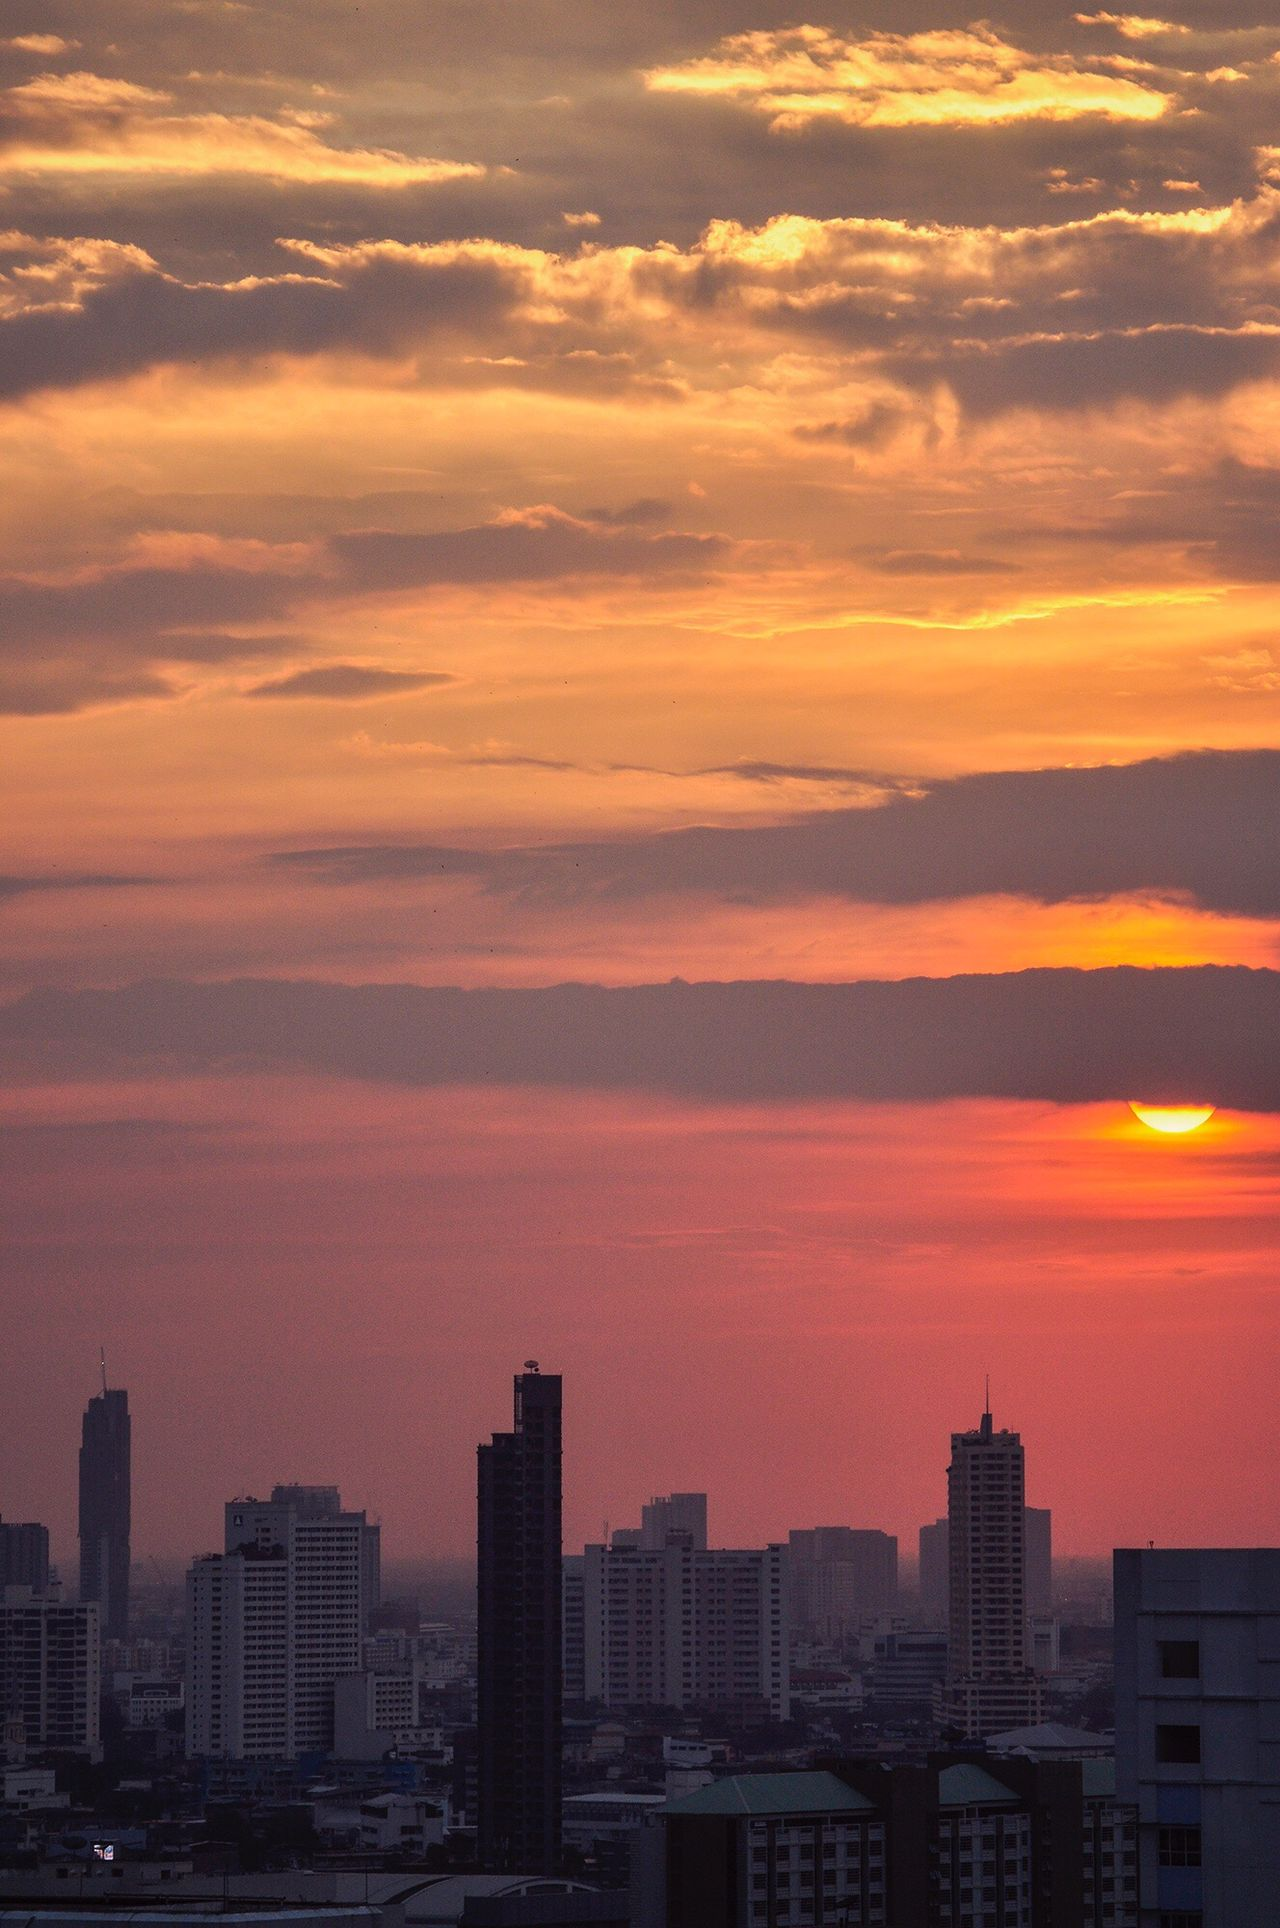 Sun is almost down Sunset City Cityscape Architecture Building Exterior Cloud - Sky Urban Skyline Sky Skyscraper Modern No People Outdoors Beauty In Nature